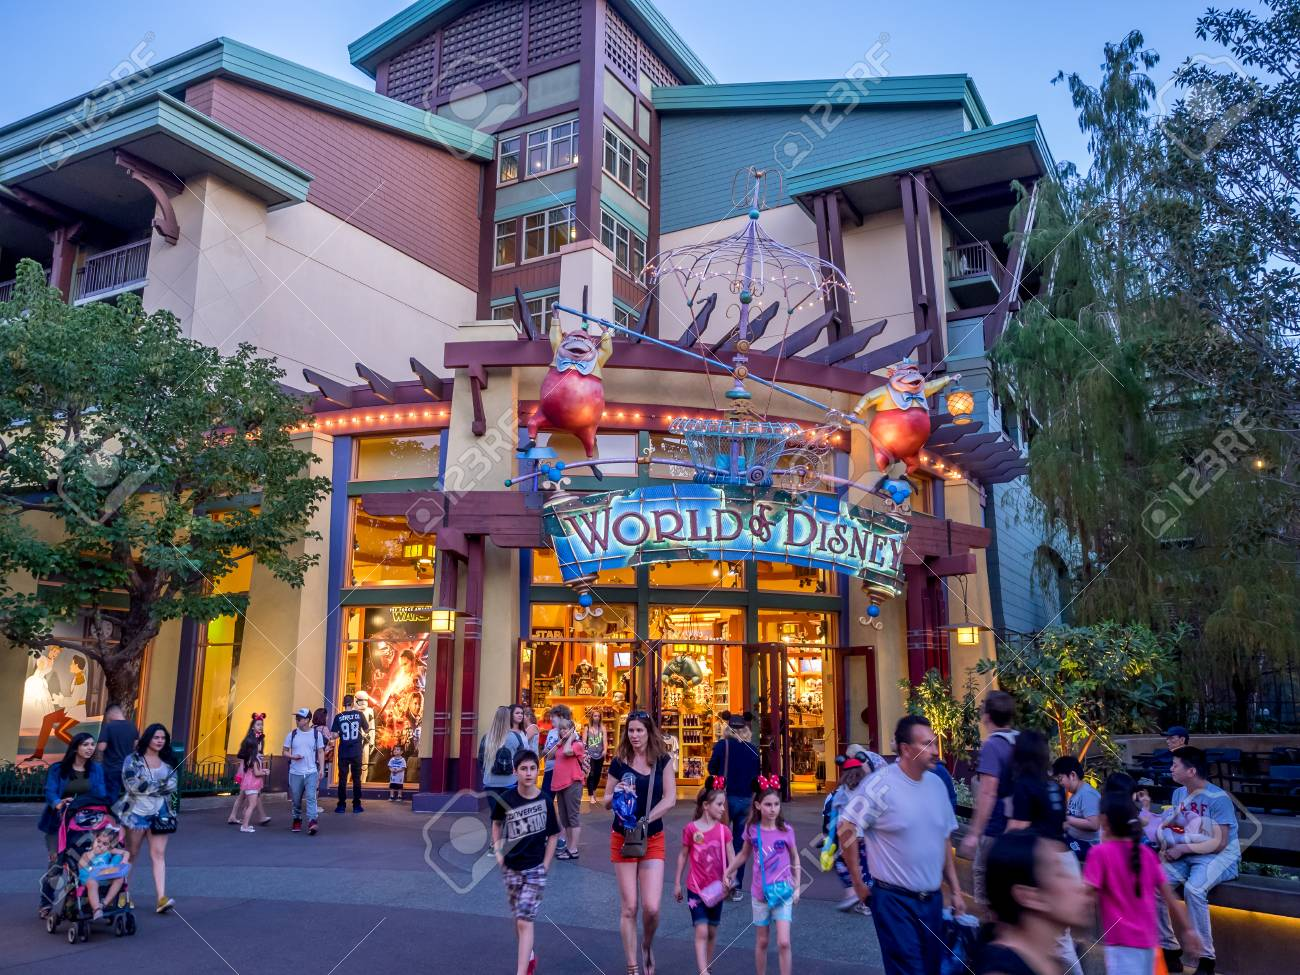 Anaheim California February 11 World Of Disney Store In Downtown Stock Photo Picture And Royalty Free Image Image 54238349